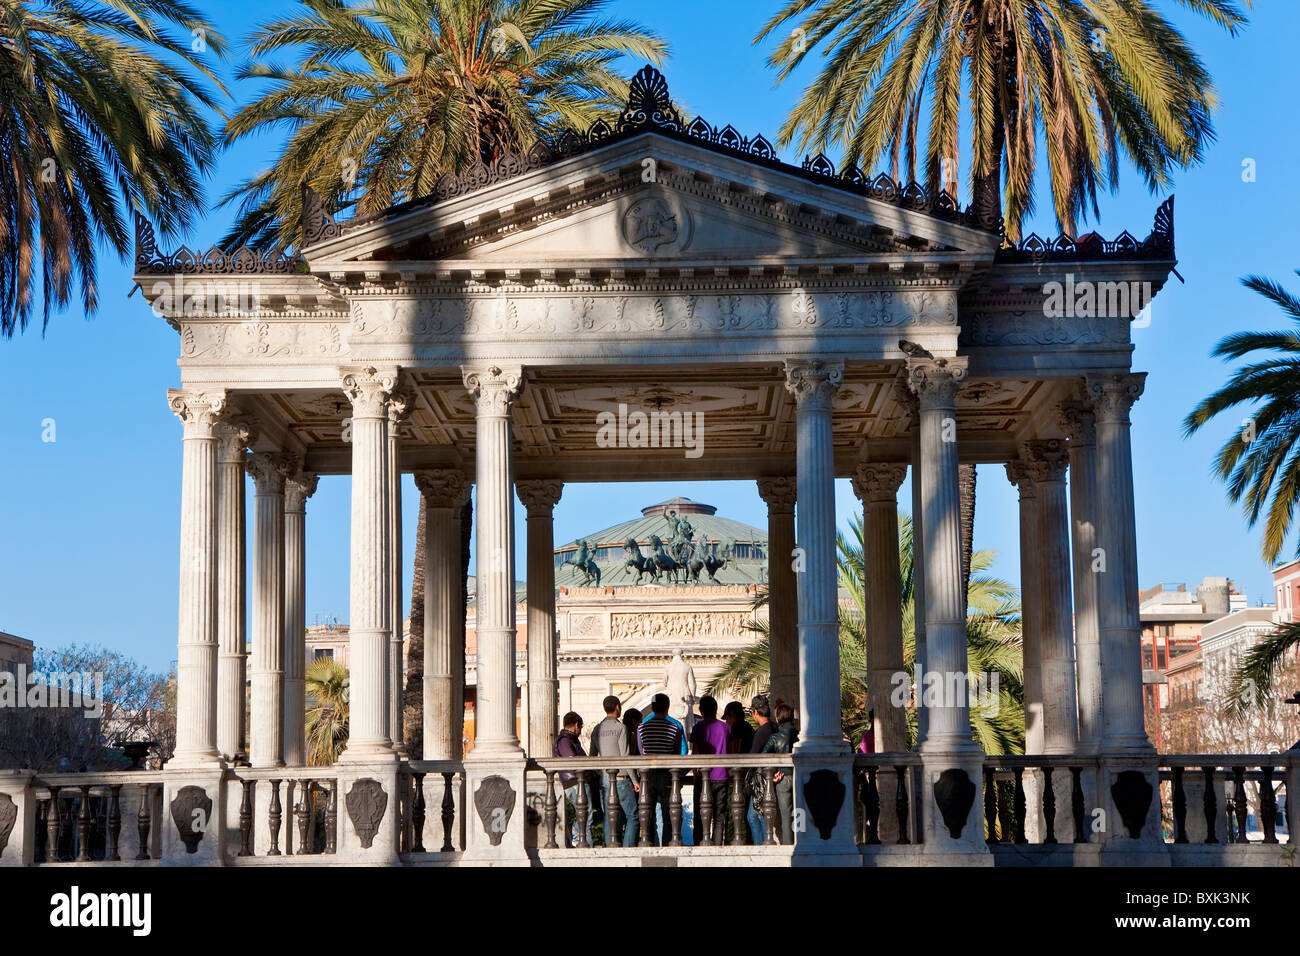 Piazza Castelnuovo, Palermo, Sicily, Italy - Stock Image